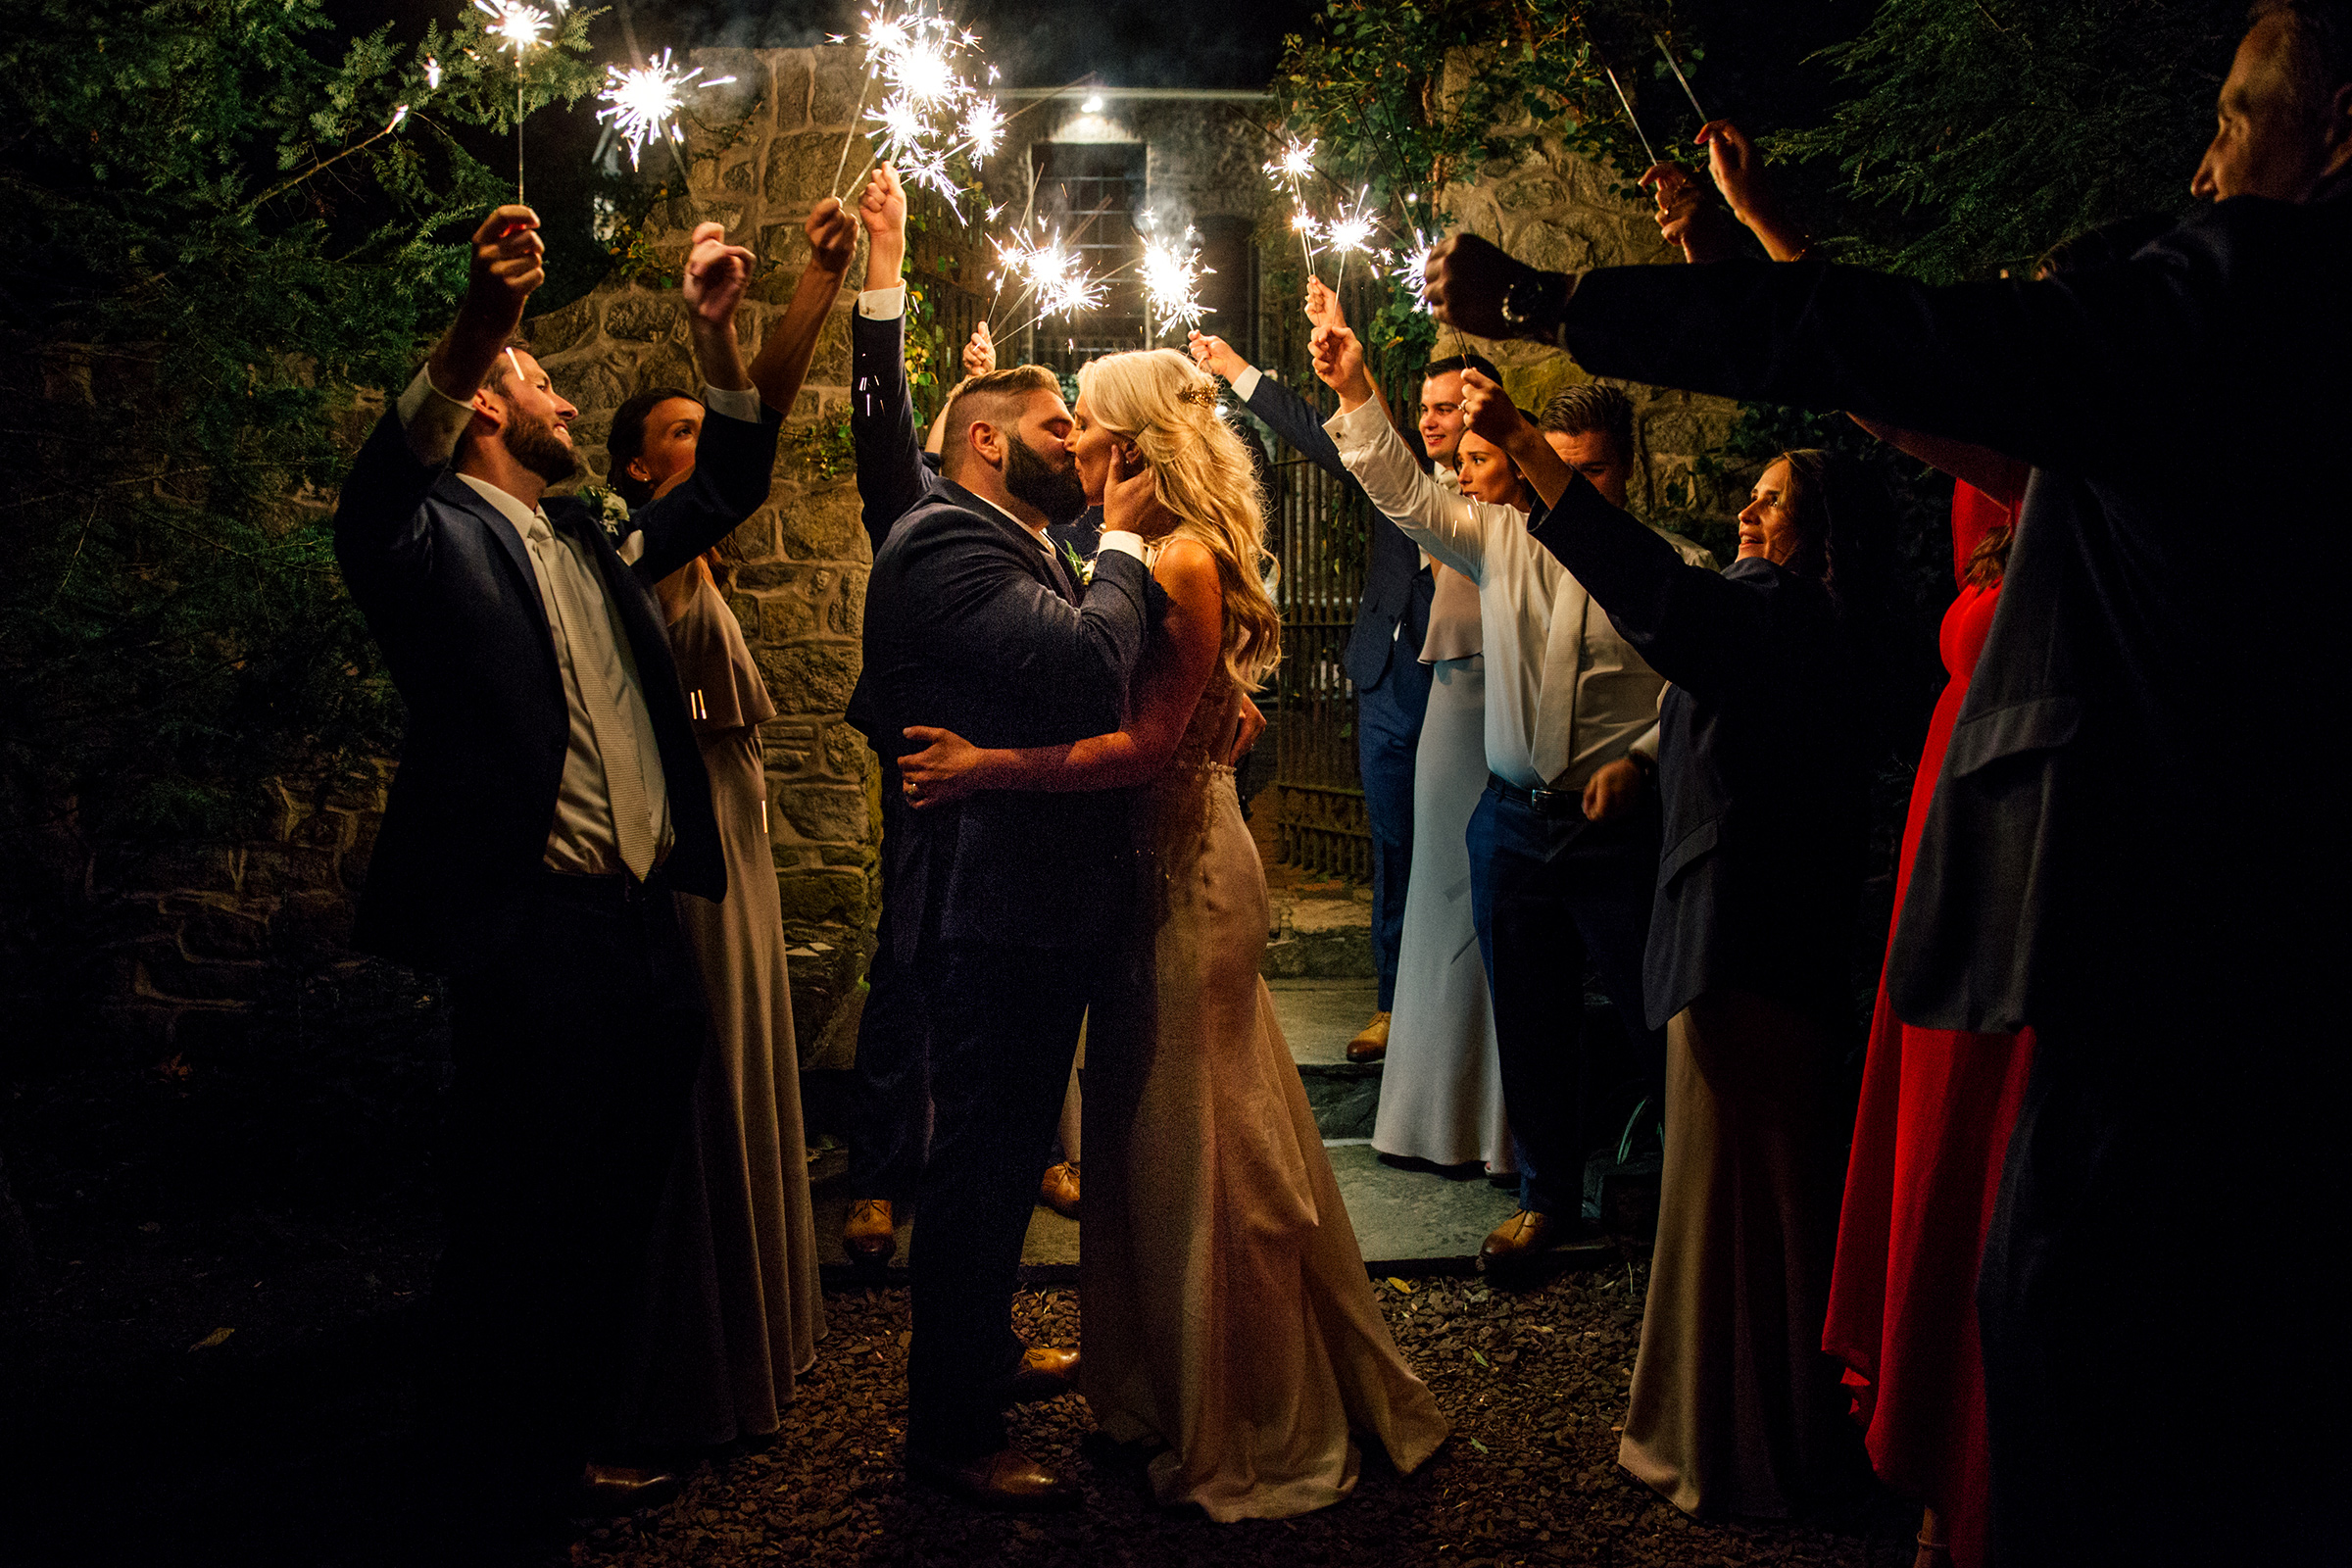 sparklers-backyard-soul-wedding-travel-intimate-natural-candid-moments.jpg